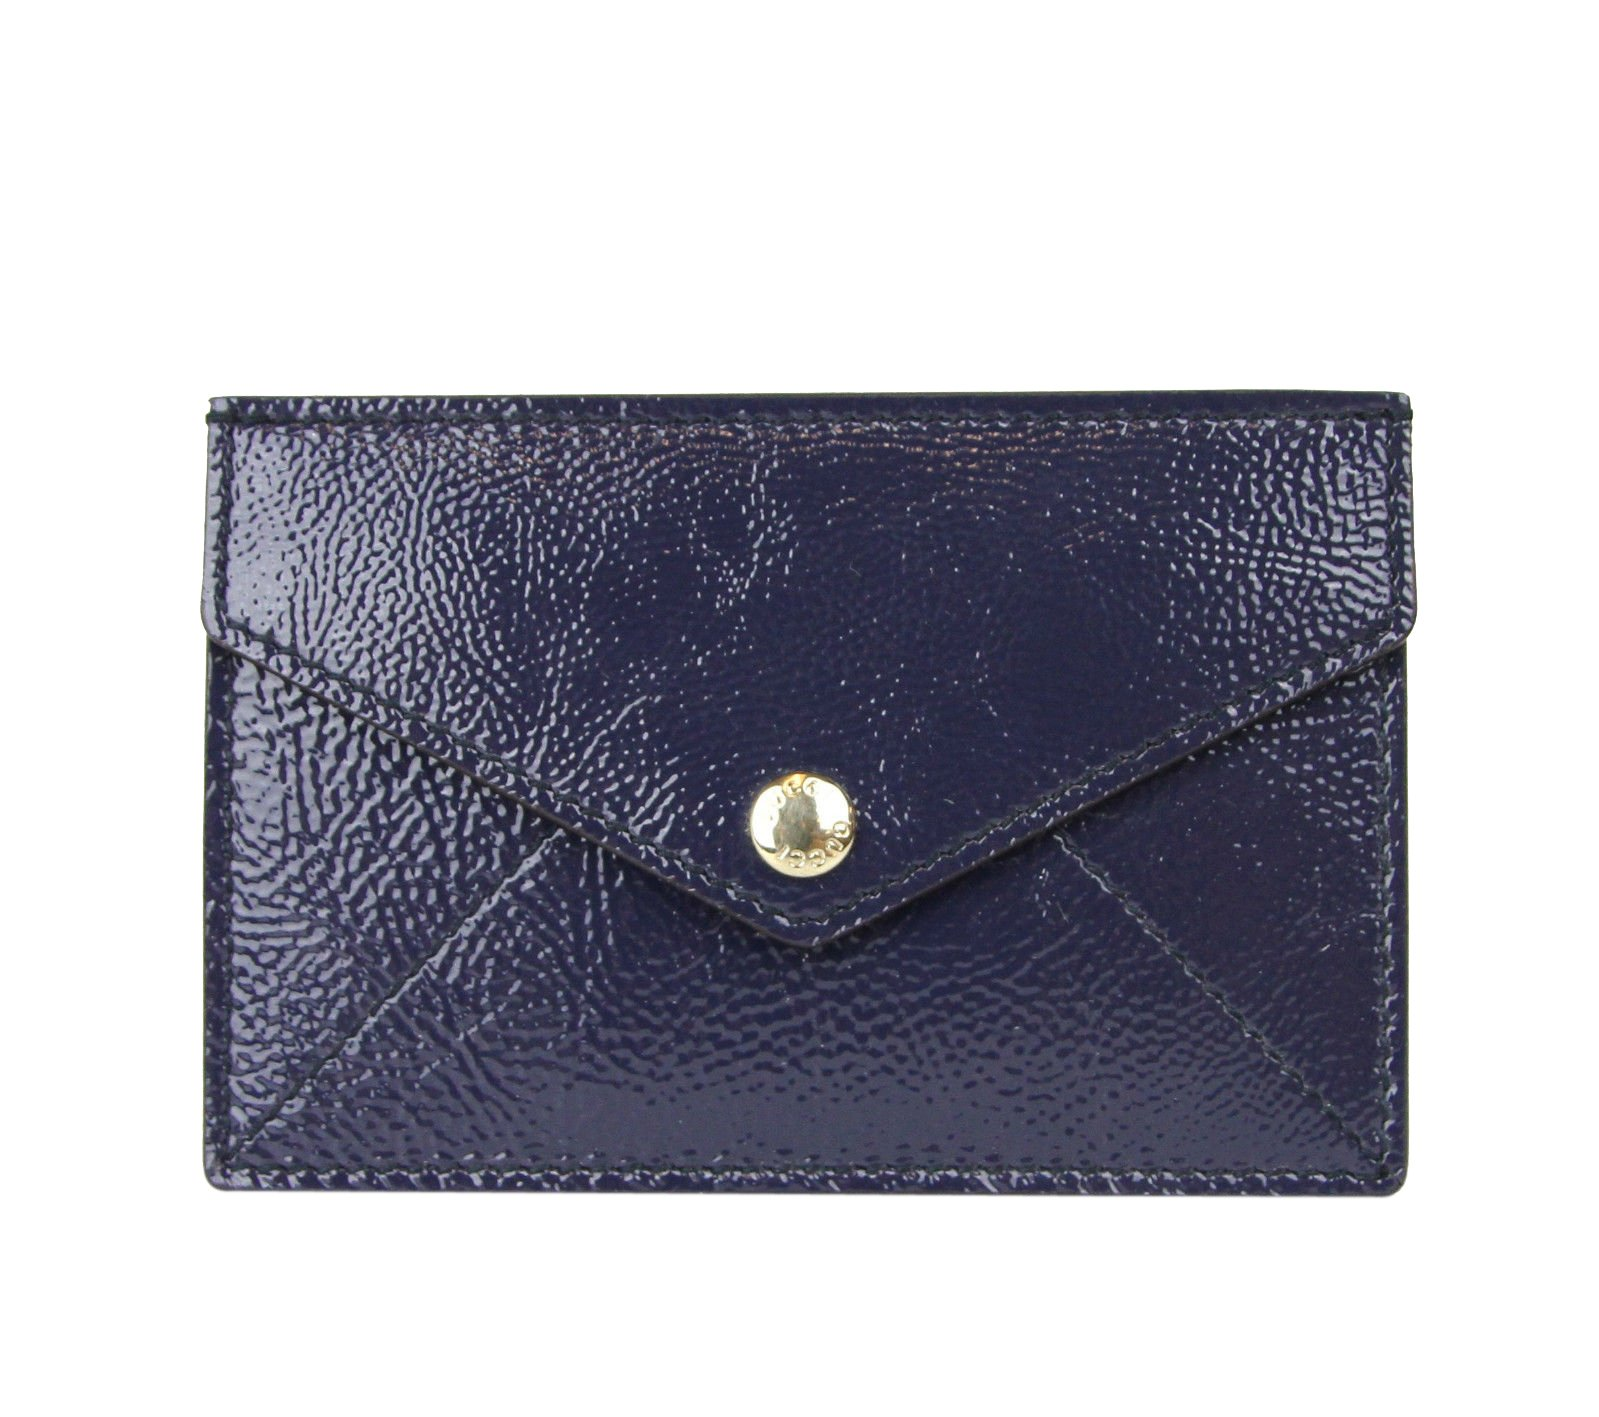 Gucci Blue Pouch Soho Patent Leather Card Case 337945 4233 by Gucci